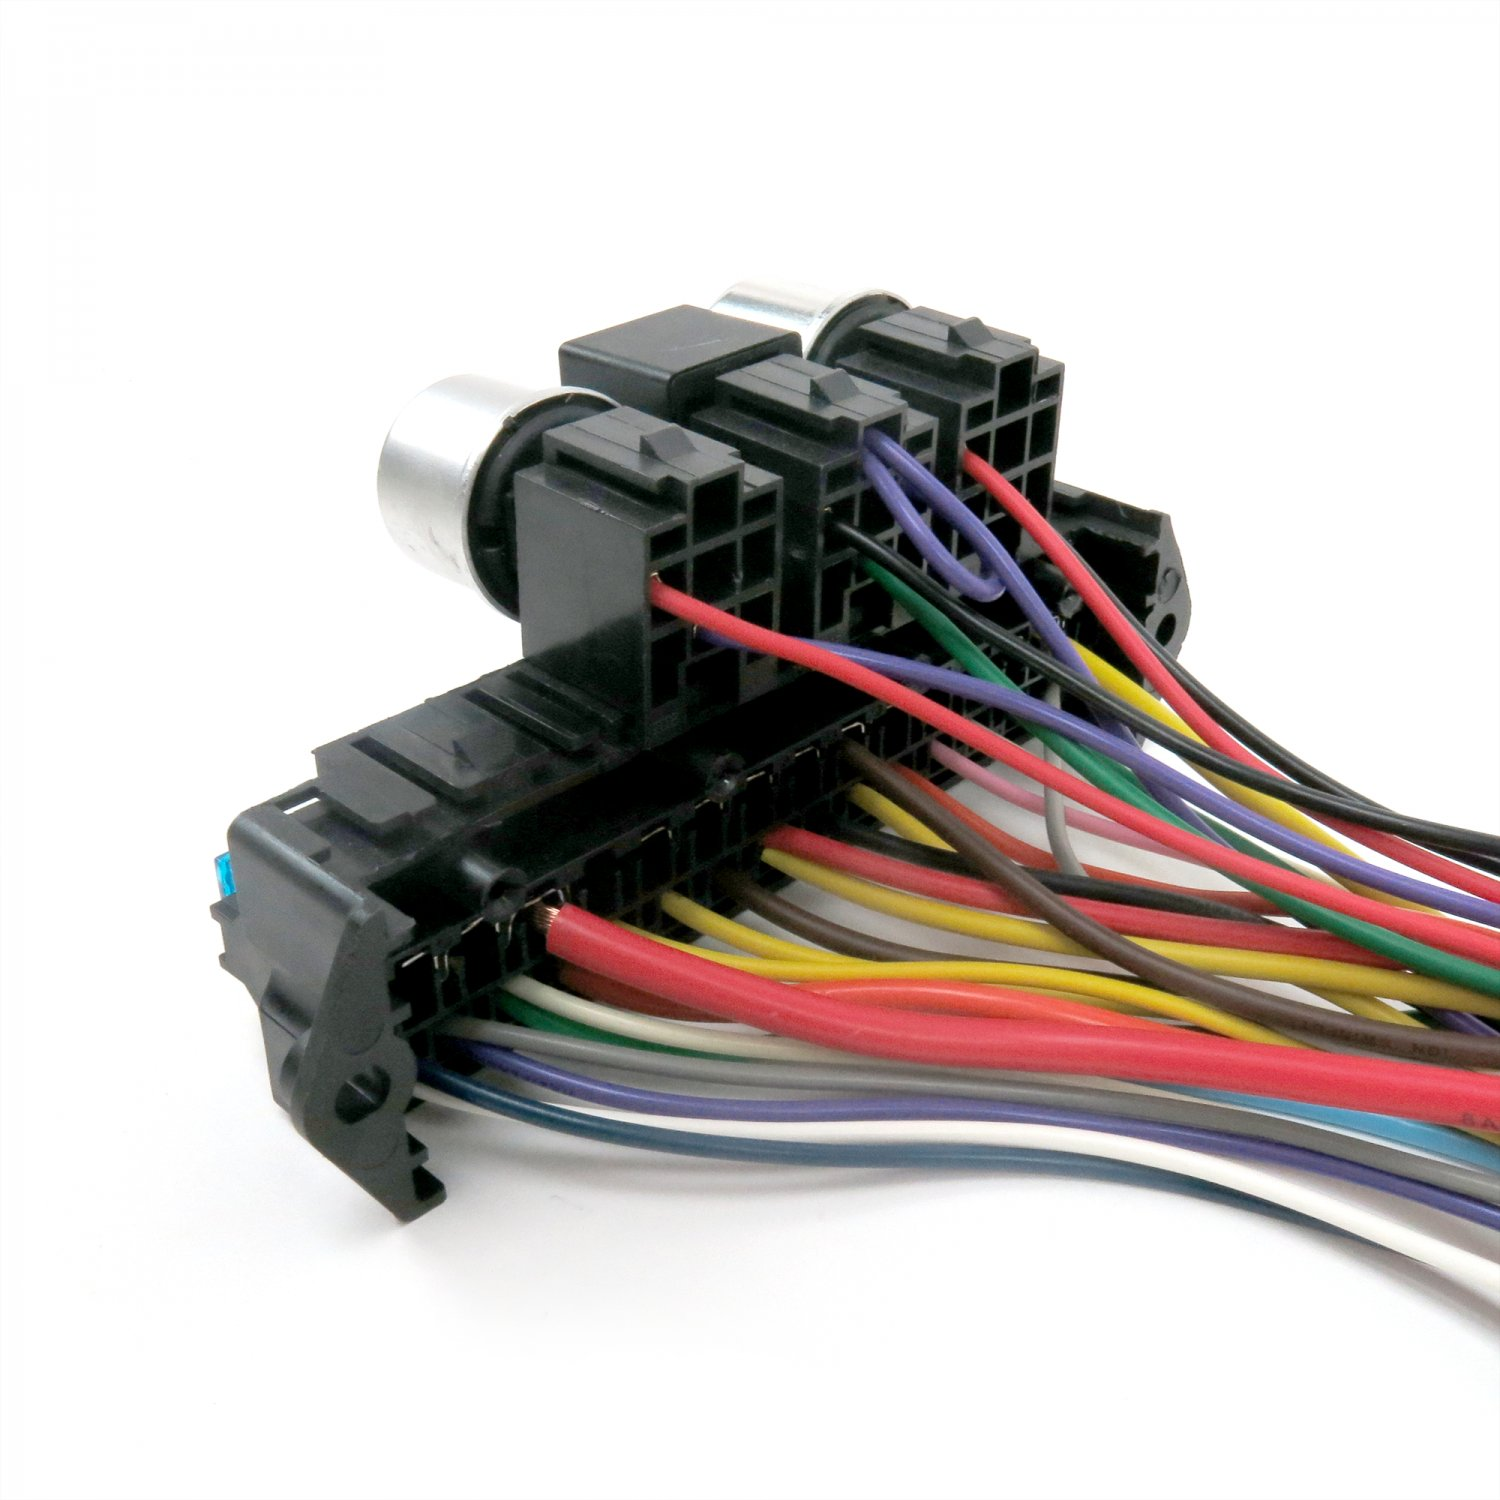 hight resolution of 1963 1974 dodge mopar wire harness upgrade kit fits painless new compact fuse